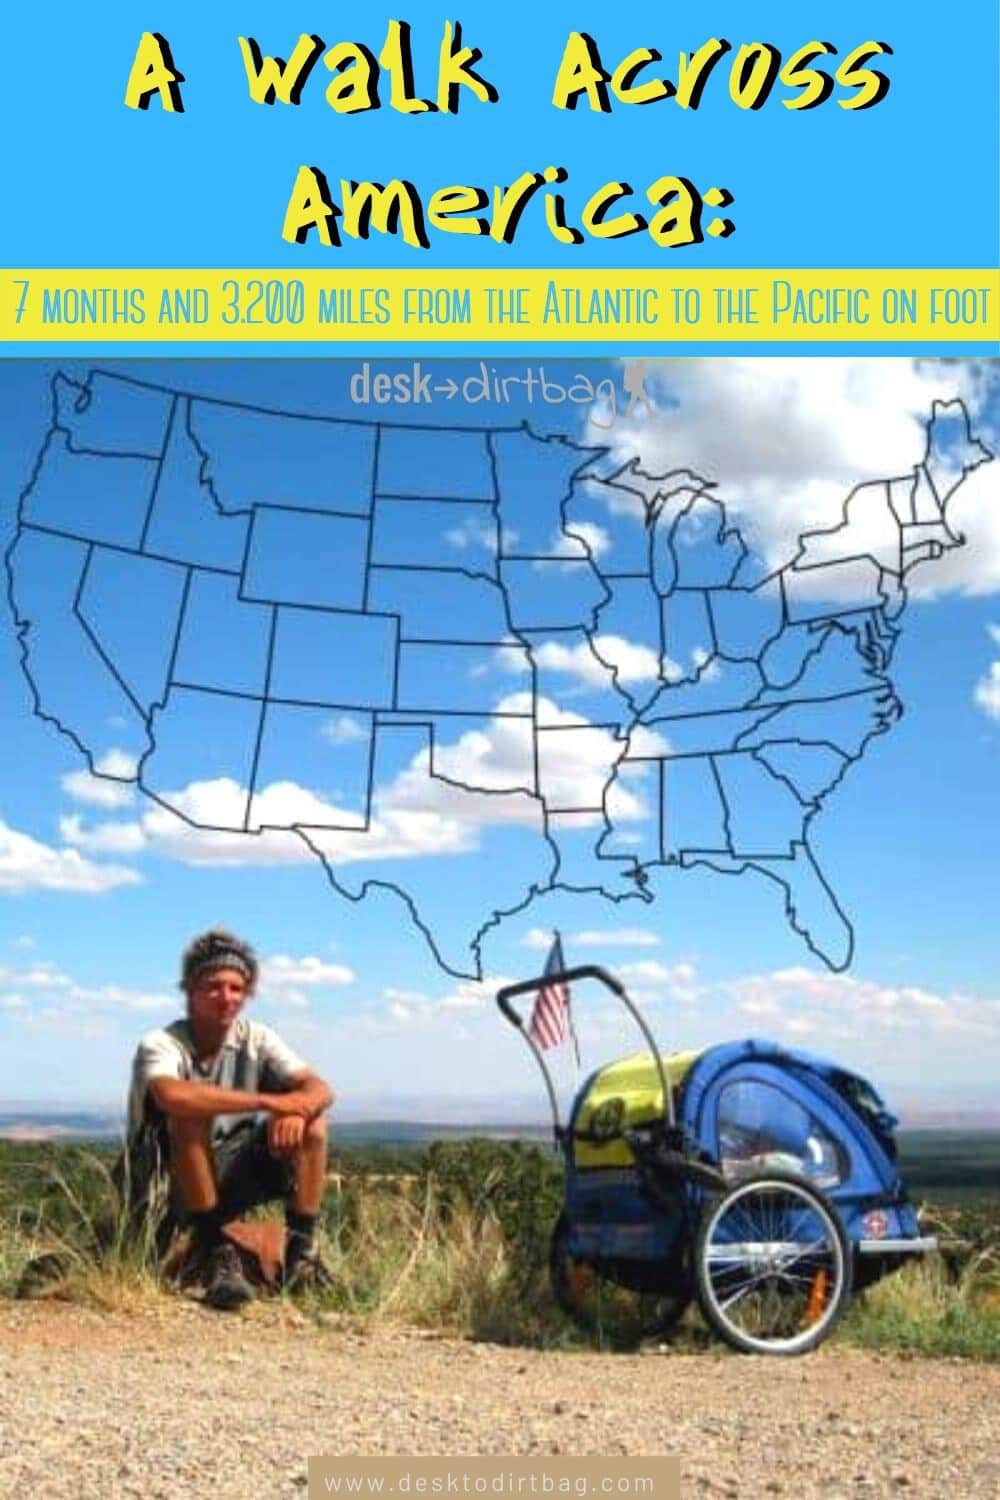 How to Walk Across America: Meet Nate Damm and His Life on Foot north-america, armchair-alpinist